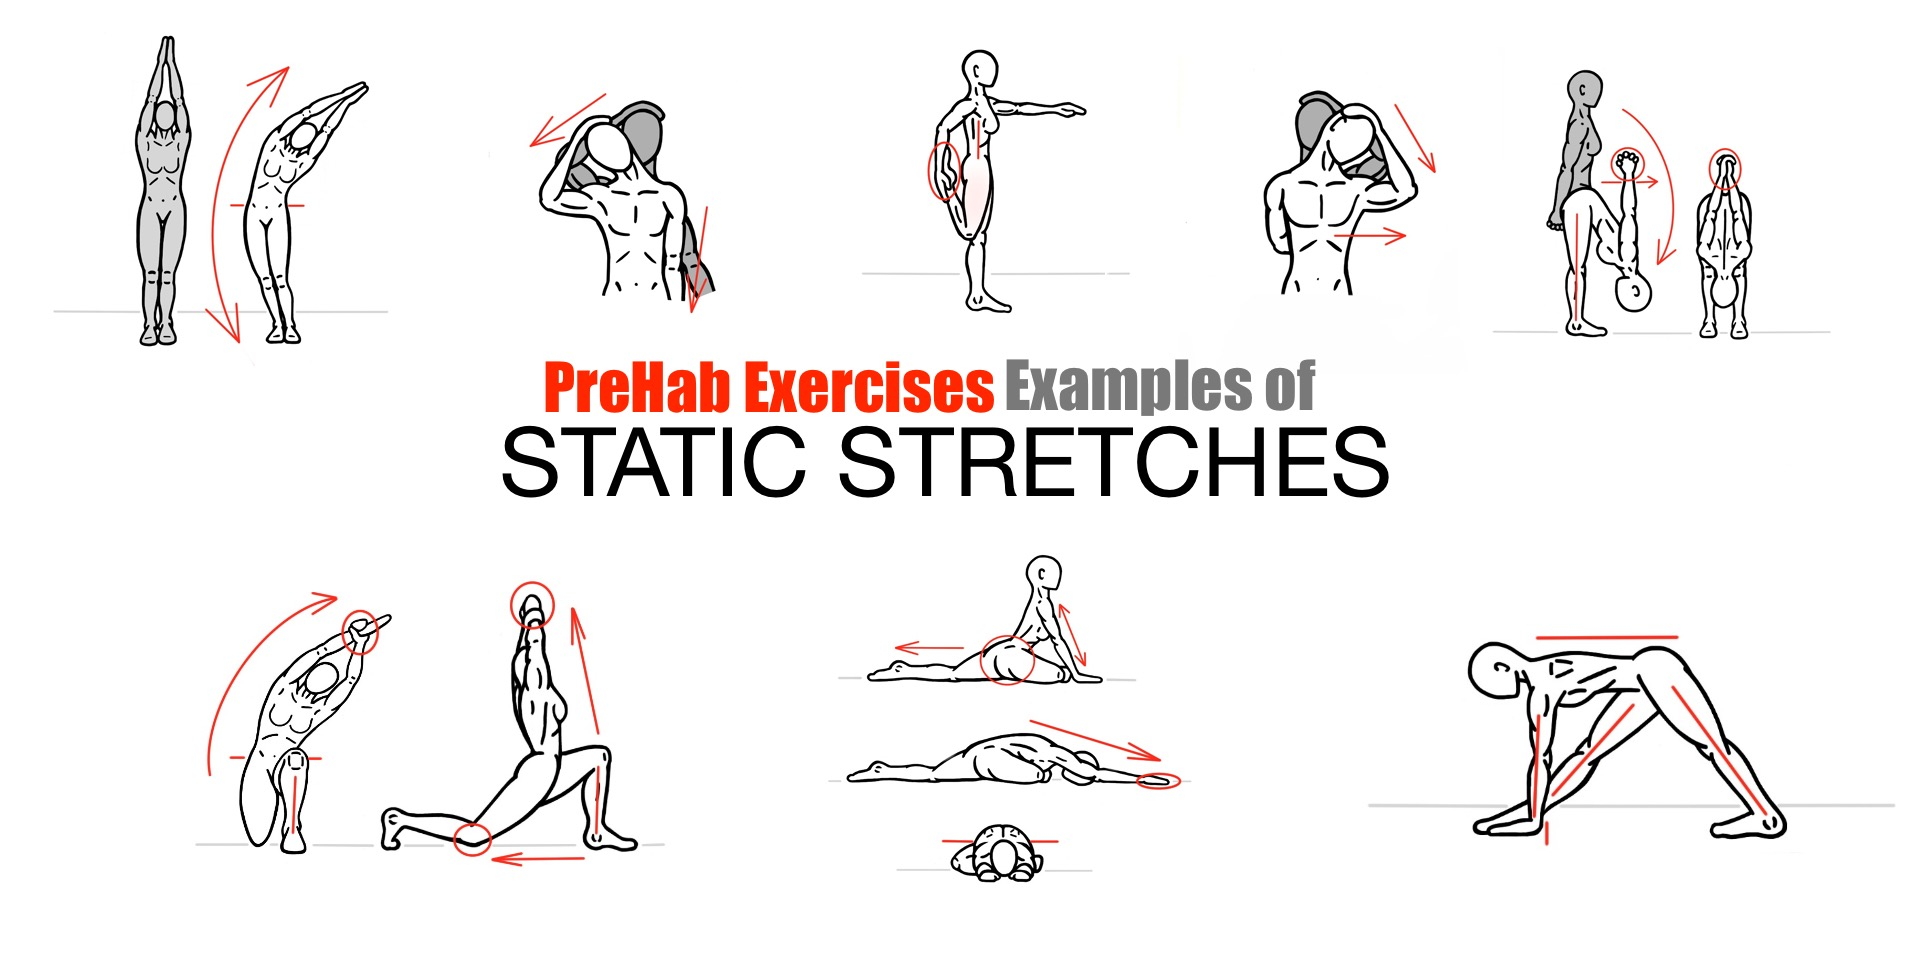 Examples of Static Stretches